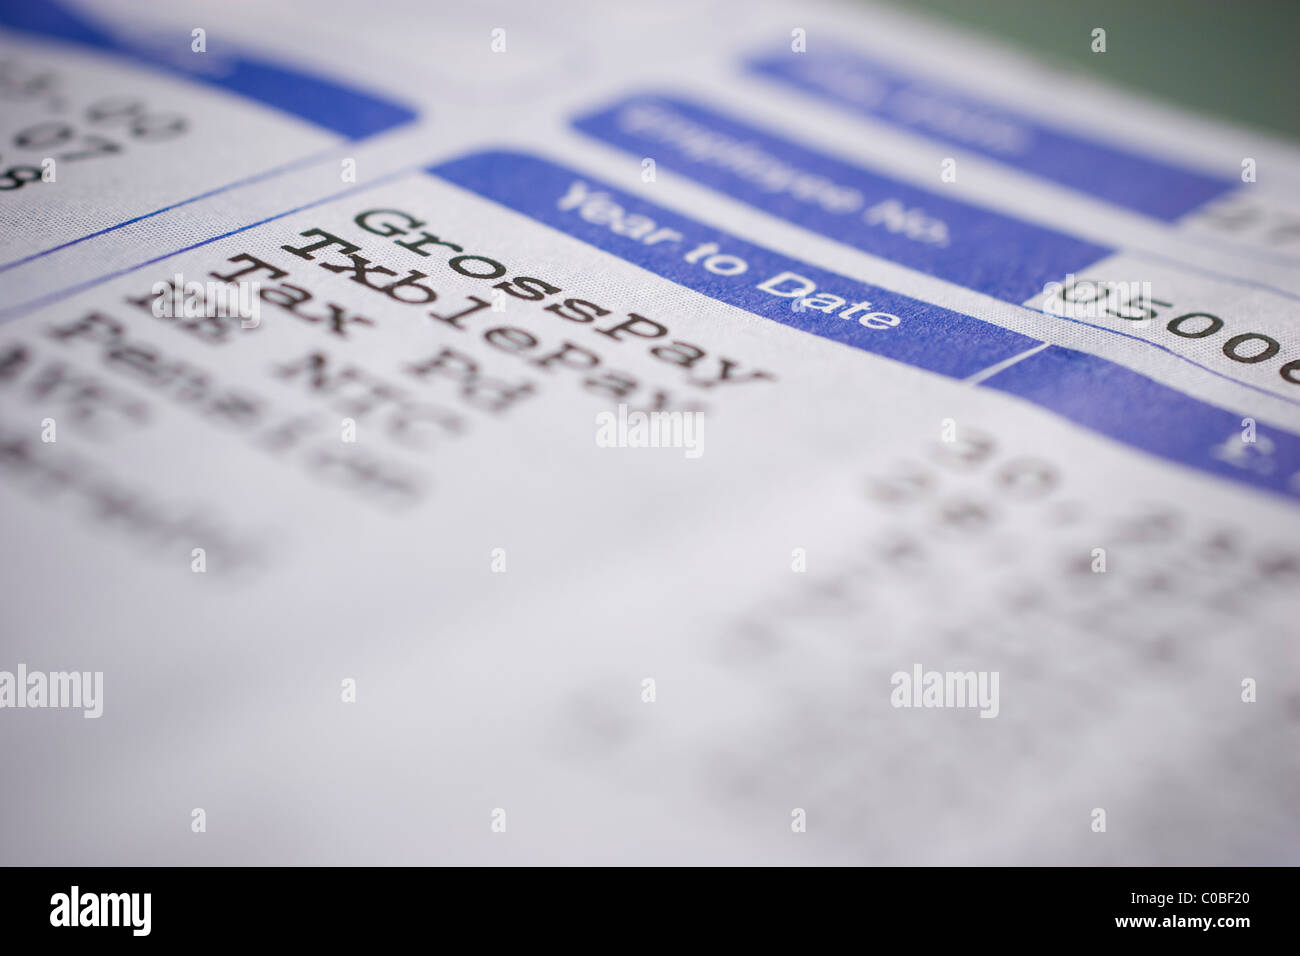 Wage slips, wages pay payslips wageslips Stock Photo